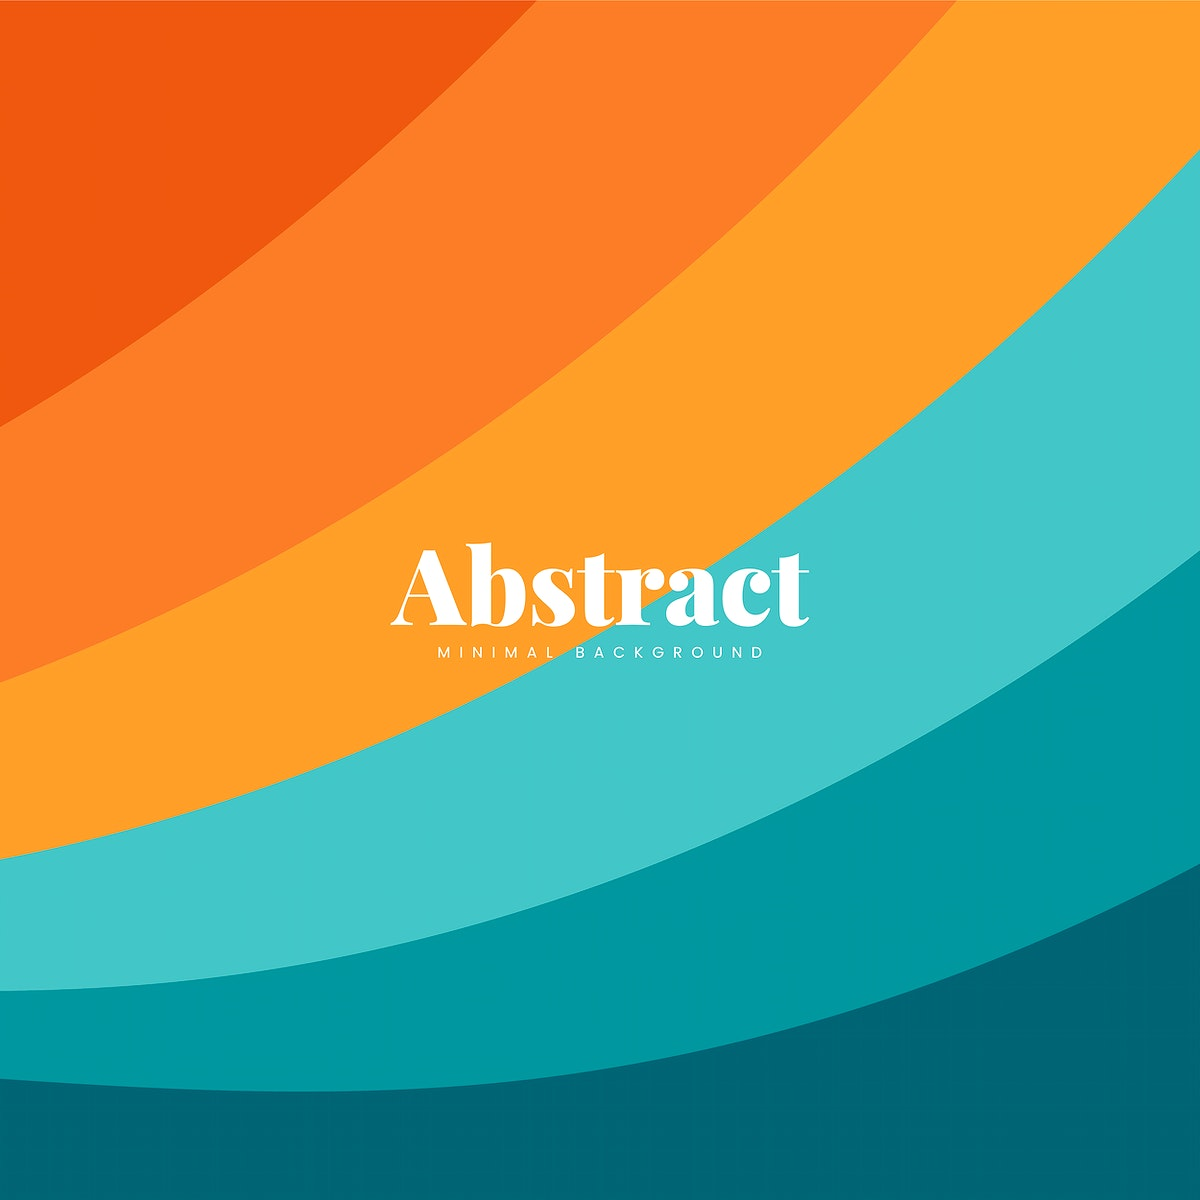 Colorful abstract print background design